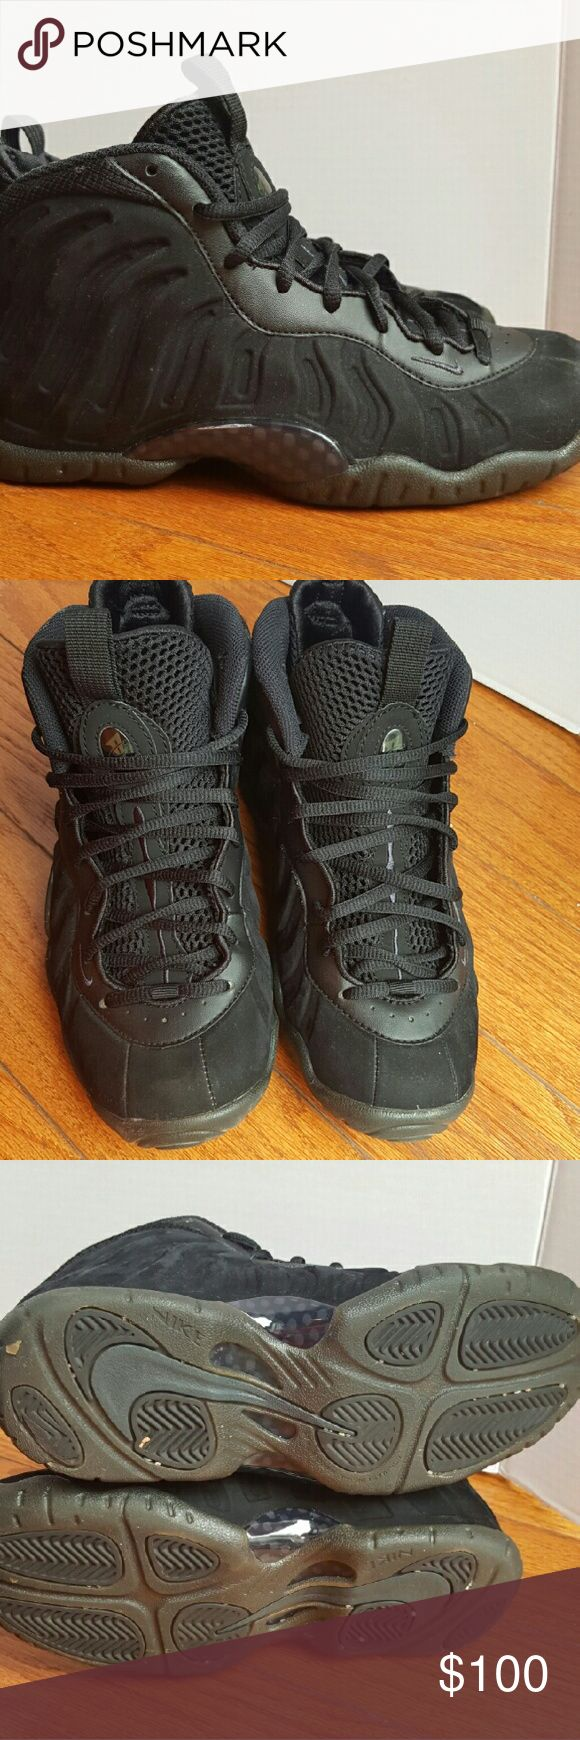 Nike Triple Black Foamposite Stealth Sneakers Foamposite in Excellent Used Condition  Youth size 5 Nike Shoes Sneakers